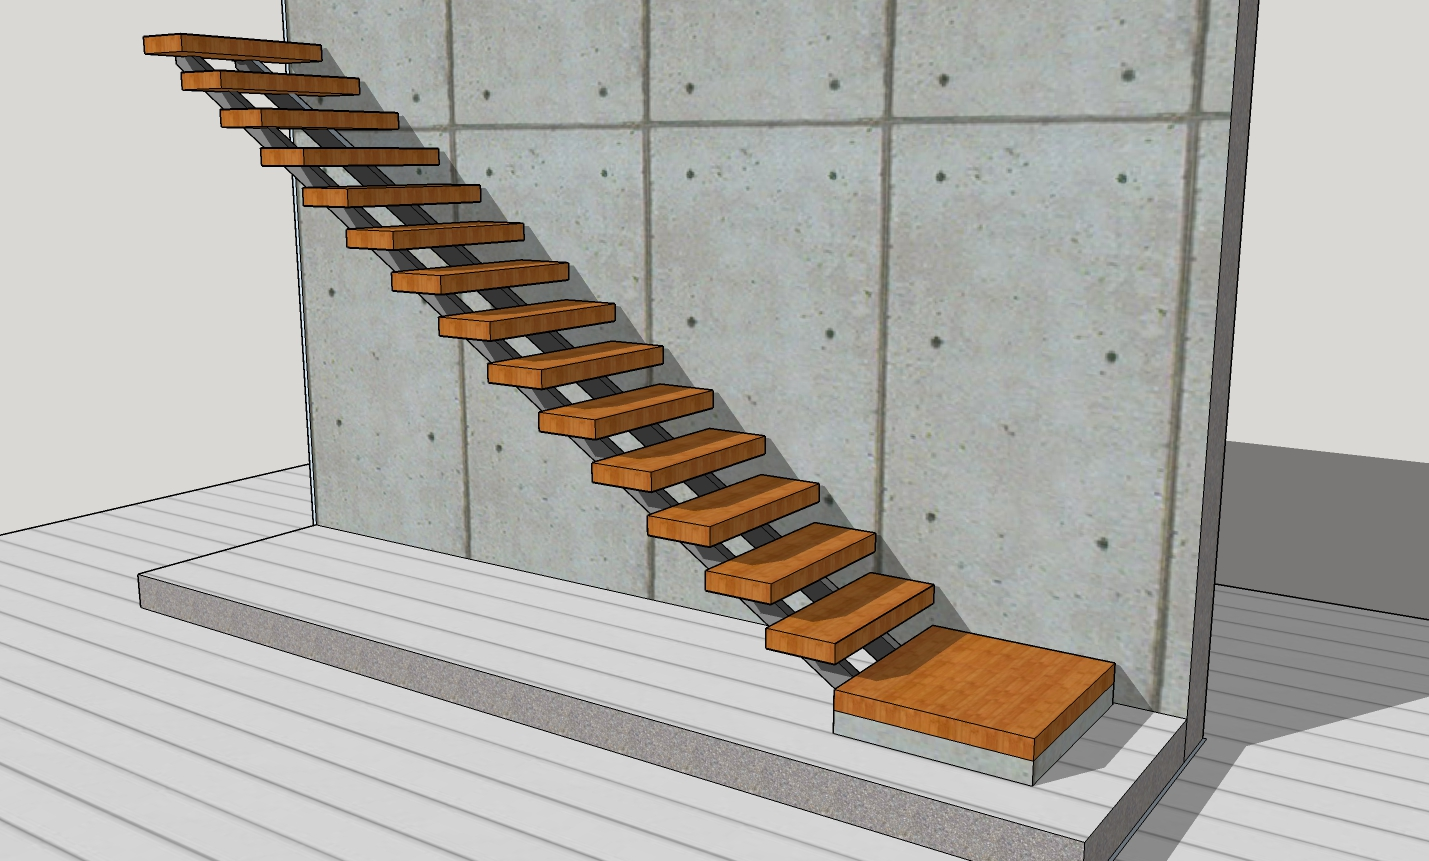 How Hard Would It Be To Make A Modern Staircase To Embellish Your New Build  House? Not Too Hard Is The Answer, As Long As You Design It To Be DIYable  From ...